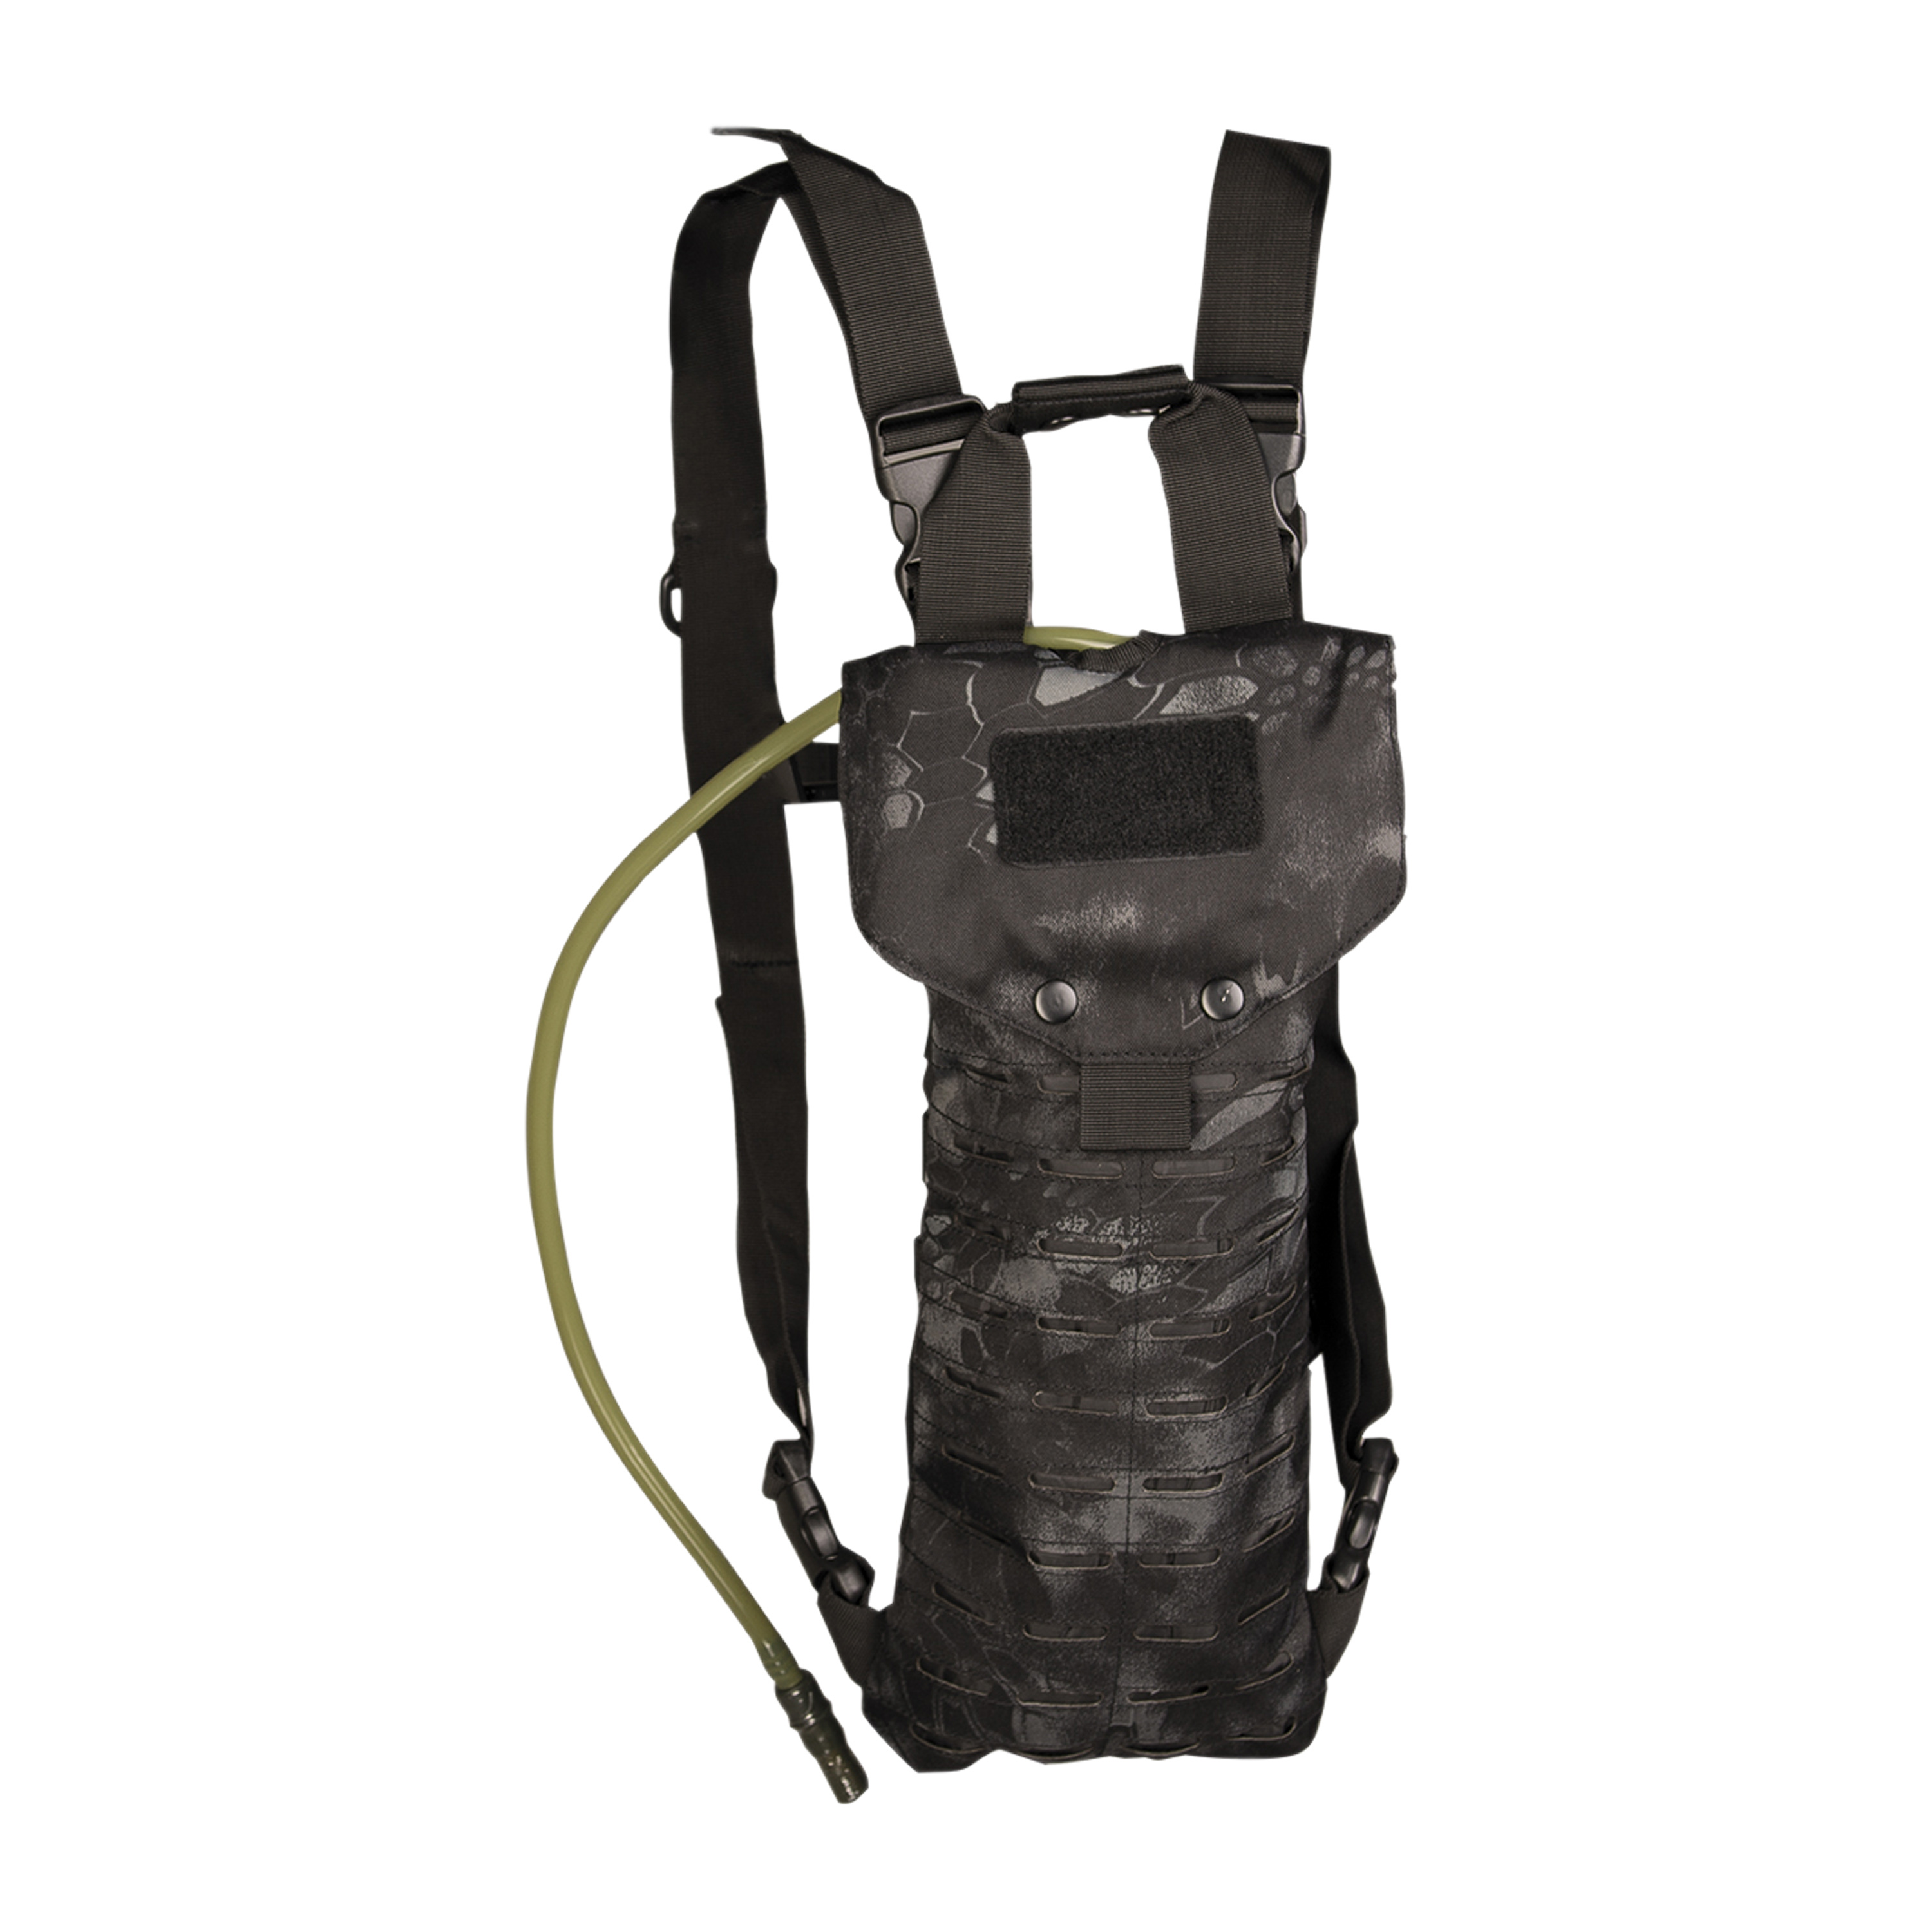 Backpack Hydration Pack Laser Cut 2.5 L mandra night